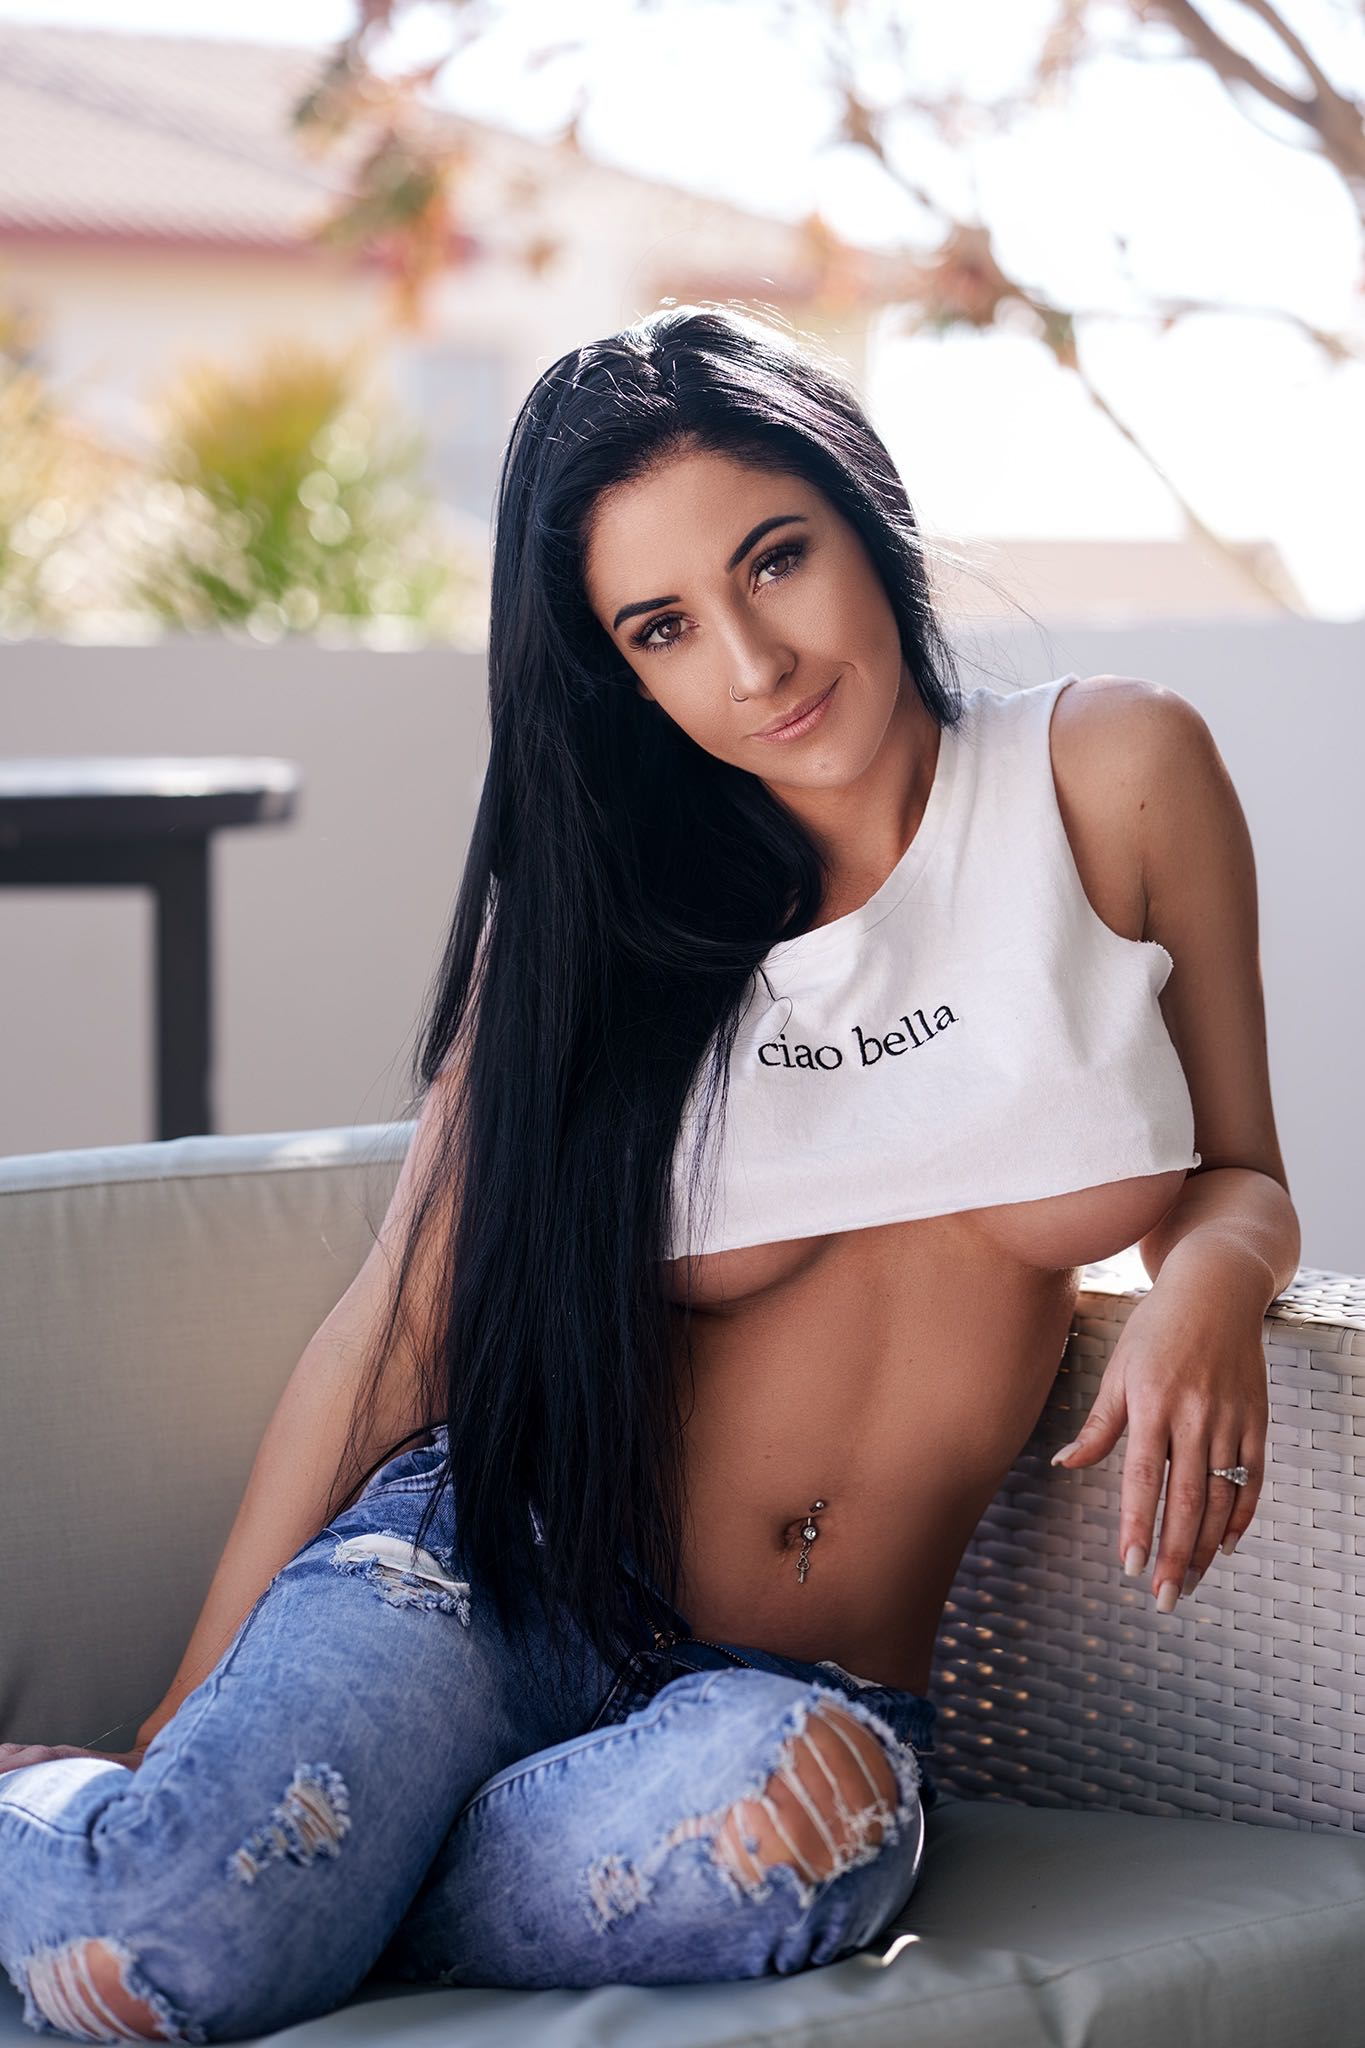 Meet Christelle du Plessis as our LW Babe of the Week